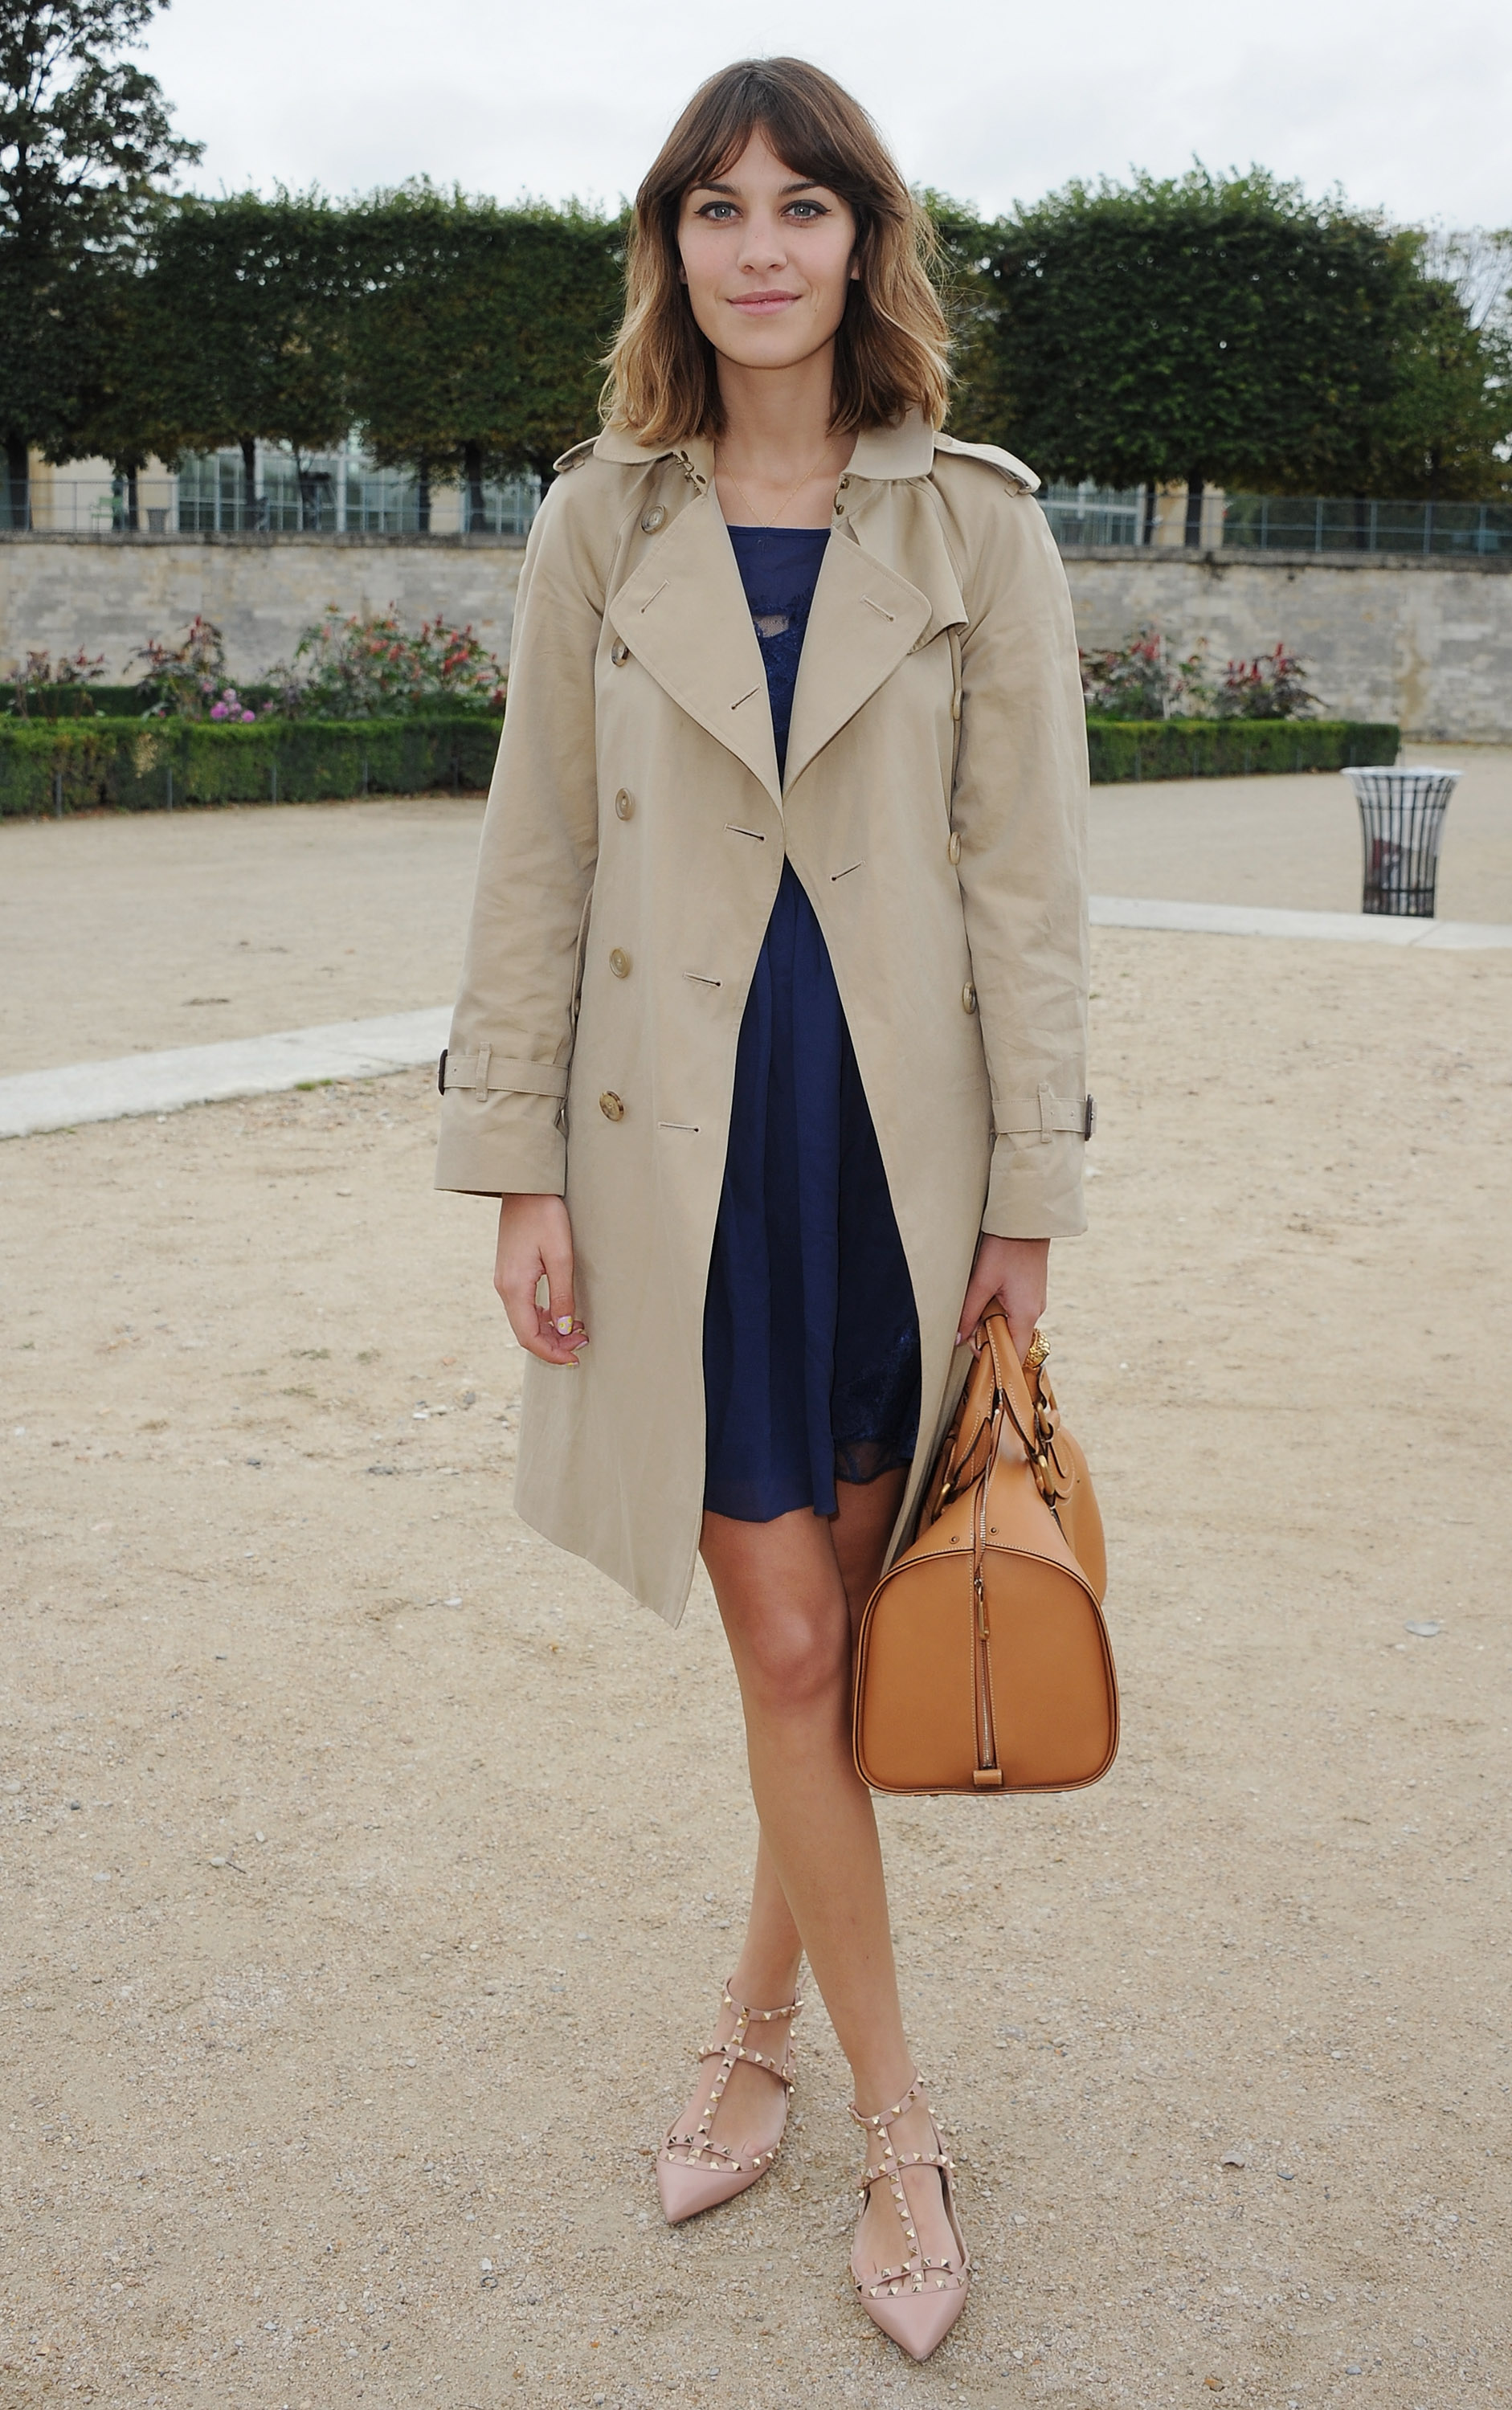 Chloe - Paris Fashion Week Spring/Summer 2011 Arrivals